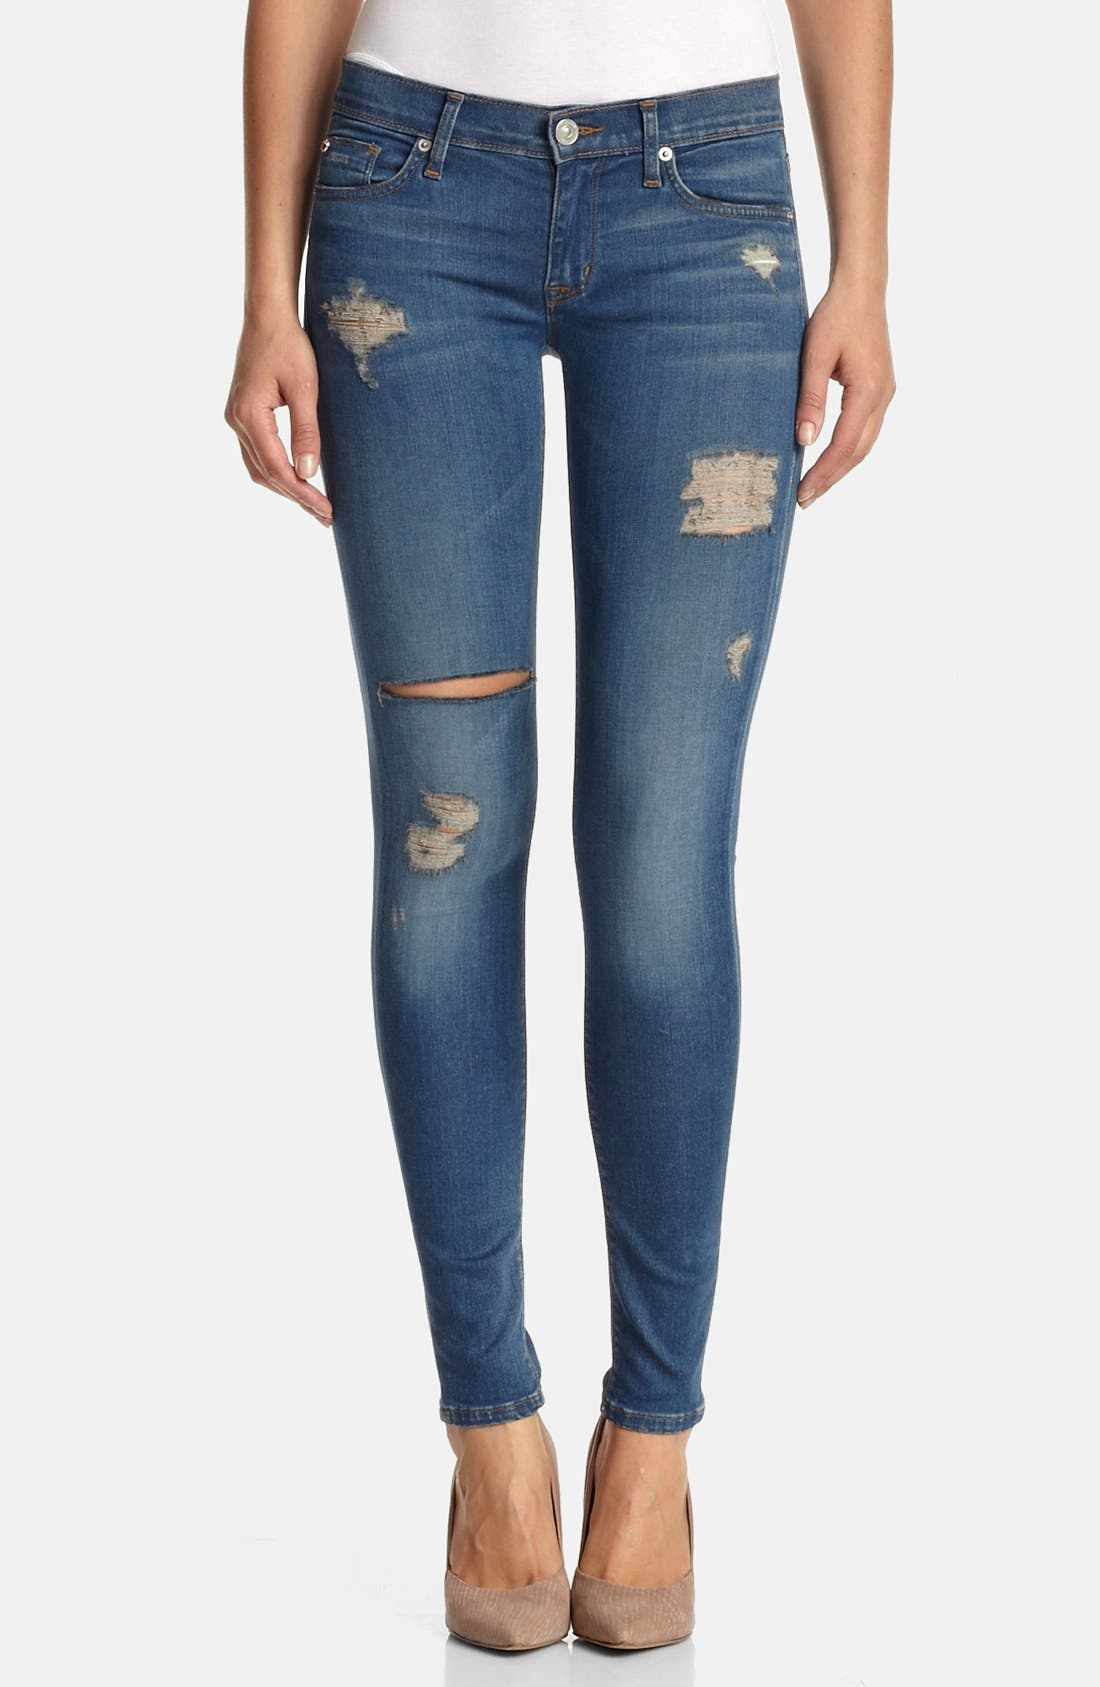 Main Image - Hudson Jeans 'Krista' Super Skinny Jeans (Foxey)